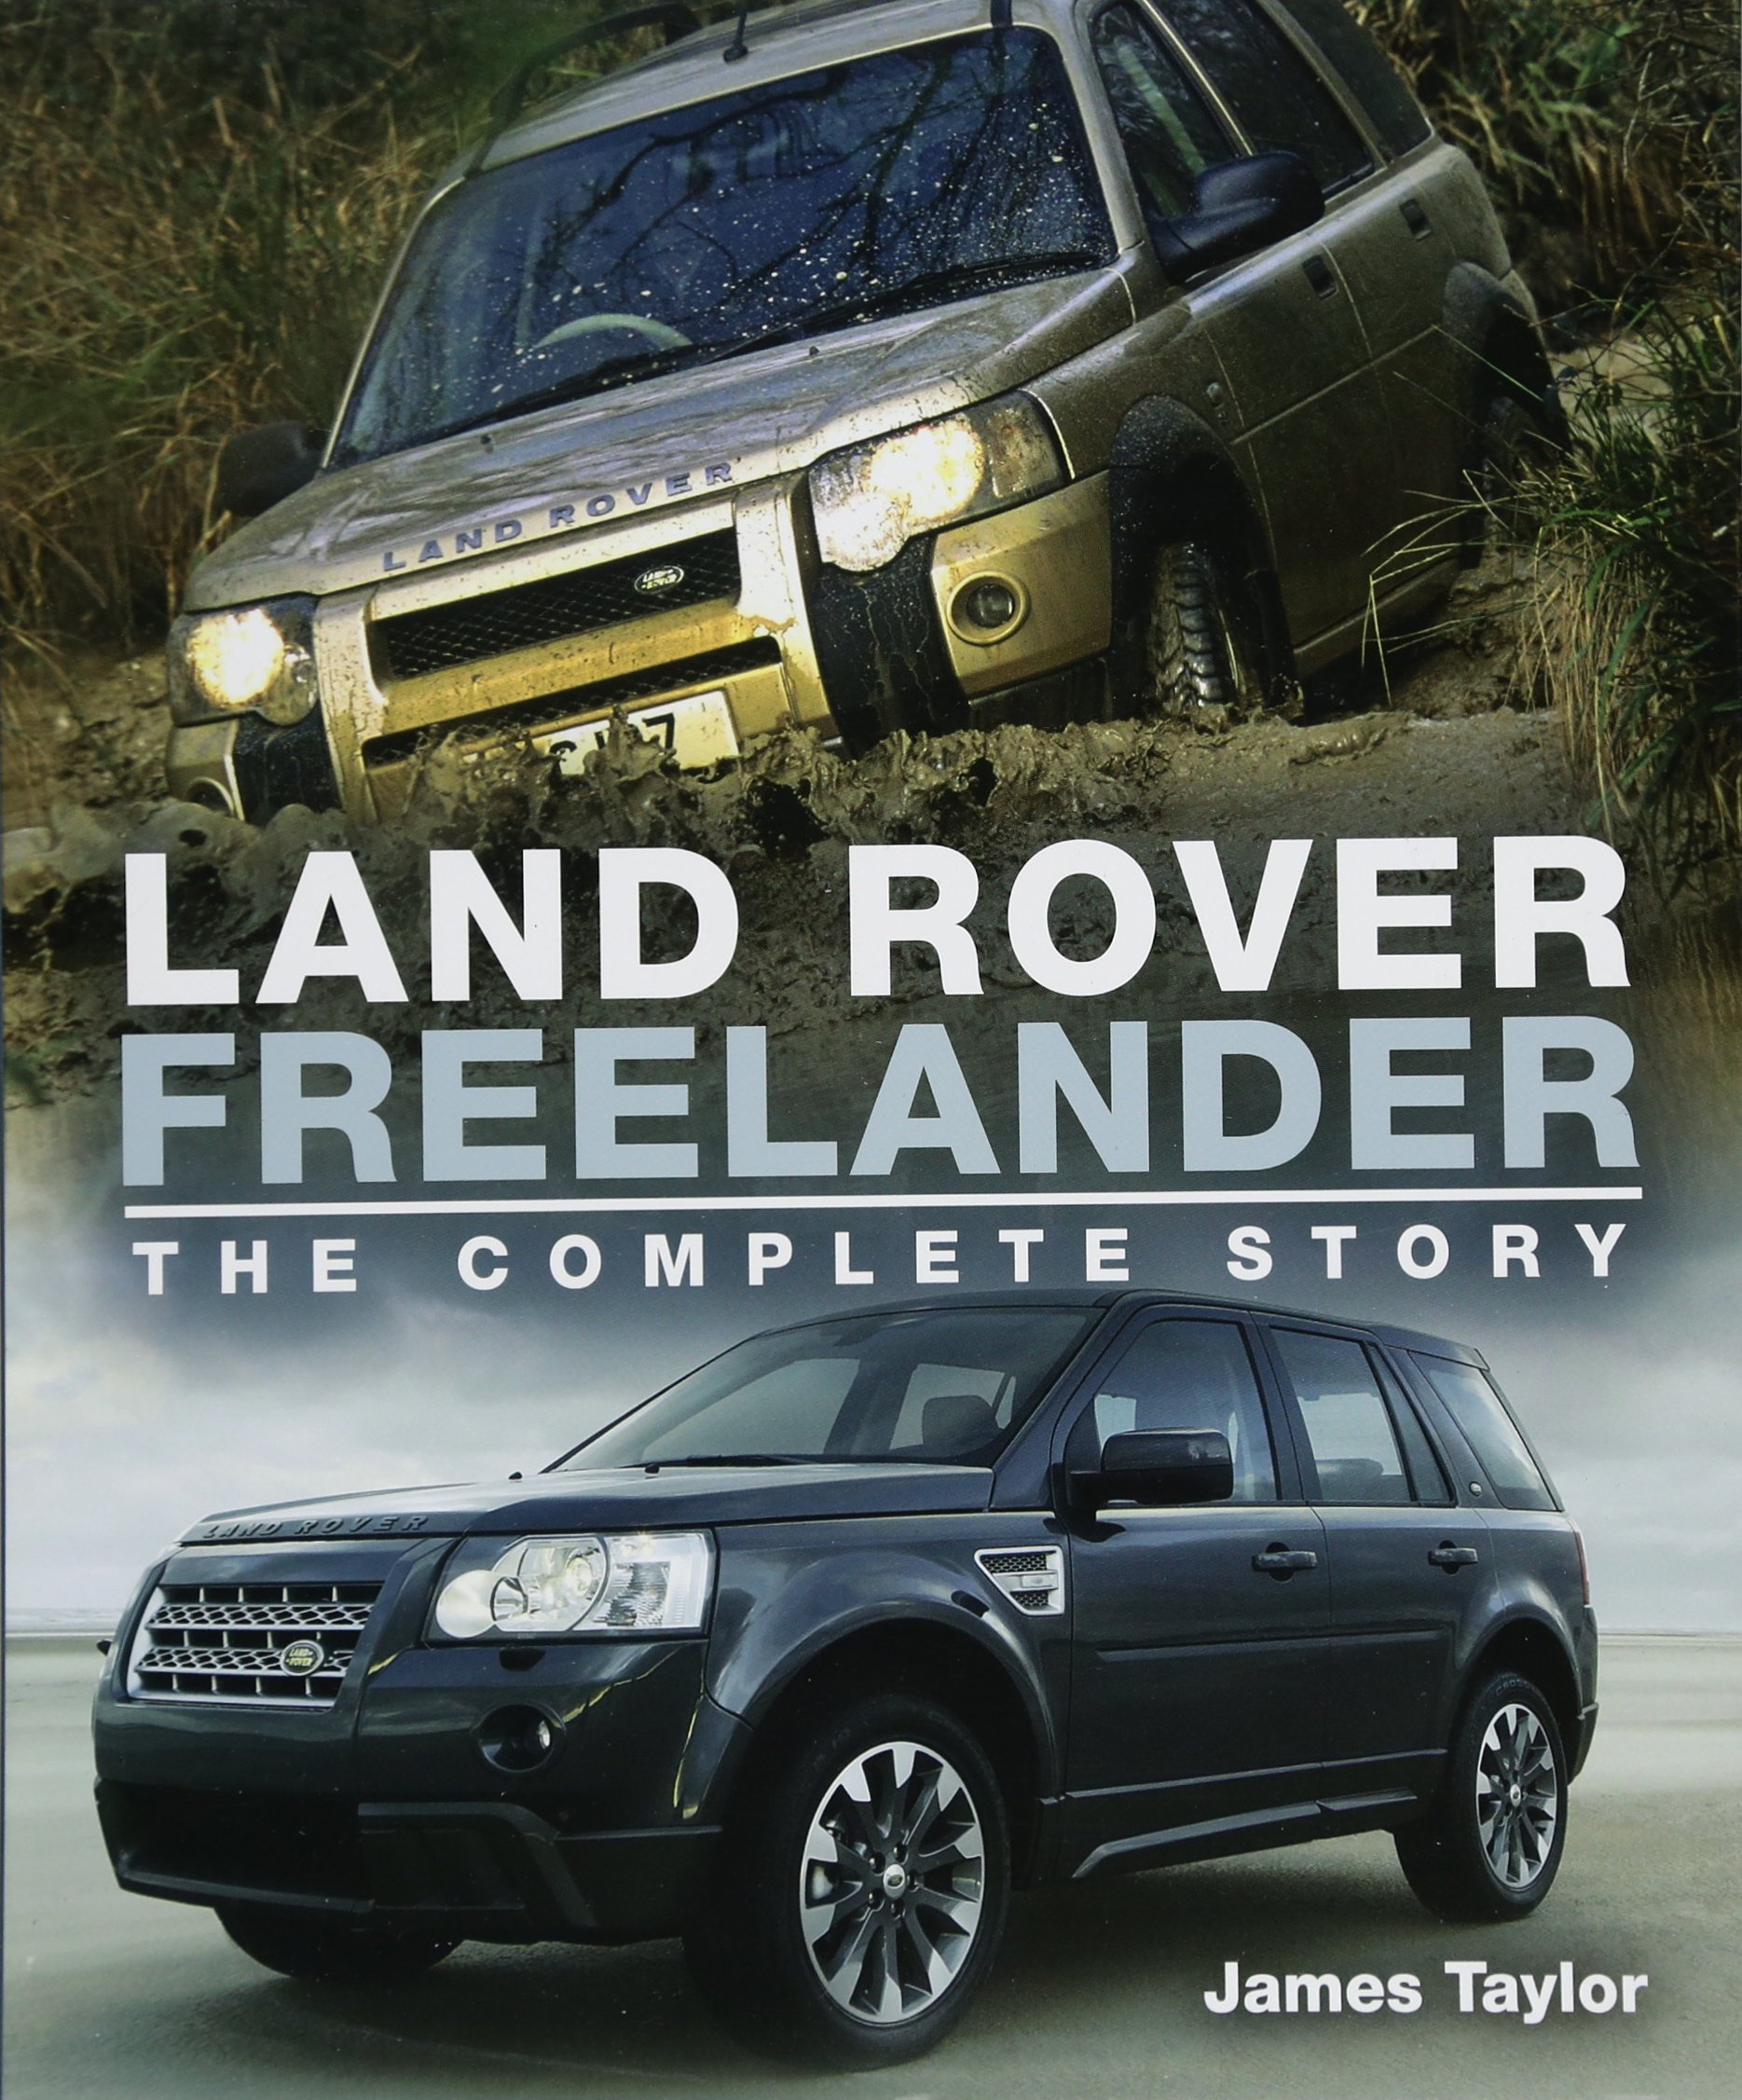 Land Rover Freelander: The Complete Story (Crowood Autoclassics):  Amazon.co.uk: James Taylor: 9781785003264: Books